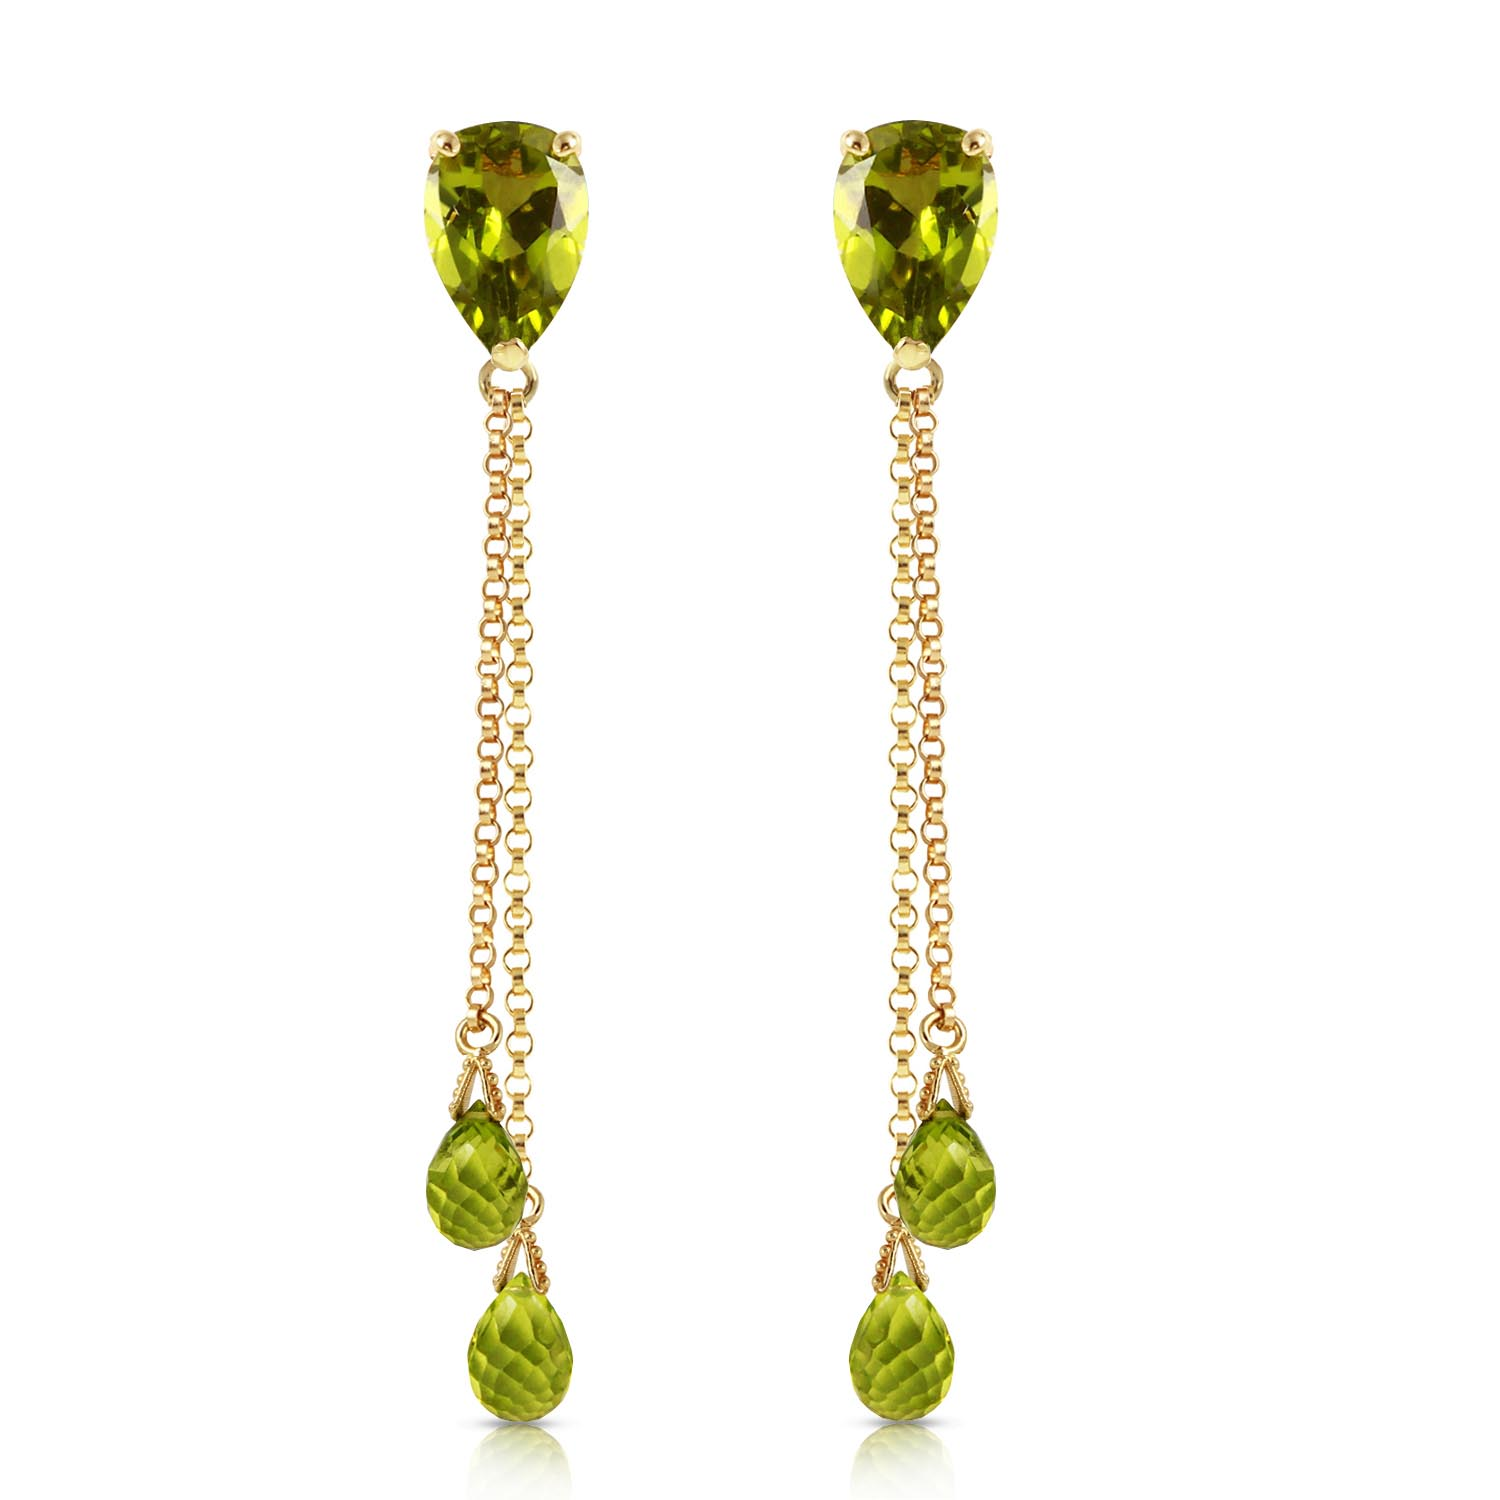 Peridot Droplet Earrings 7.5ctw in 9ct Gold